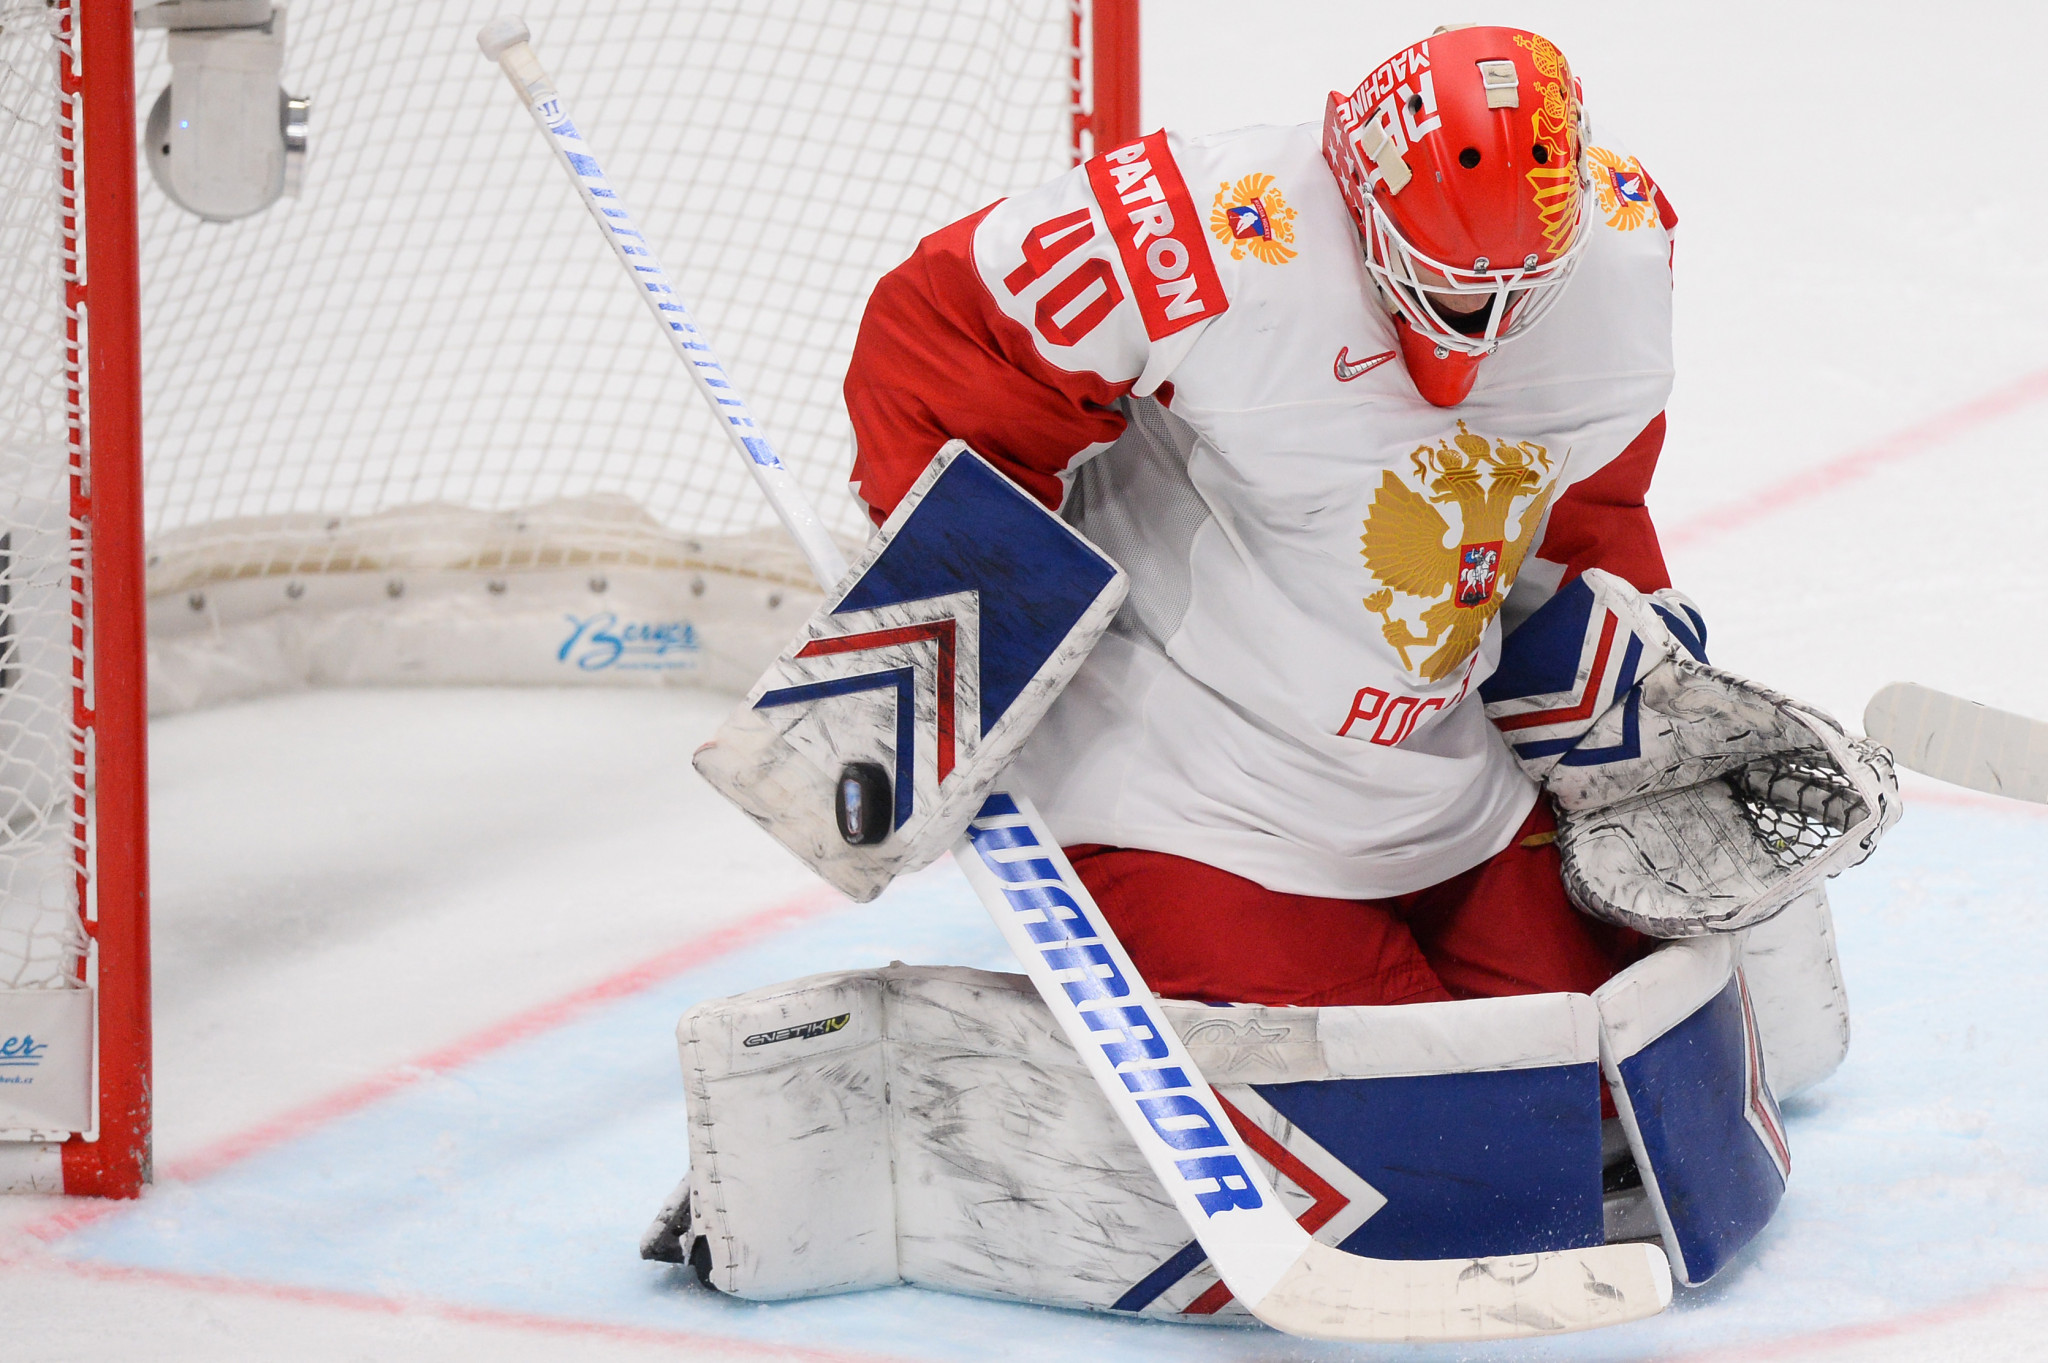 Russia's goaltender Alexander Georgiev makes a save during the 3-0 win over Switzerland tonight at the IIHF World Championship in Bratislava ©Getty Images